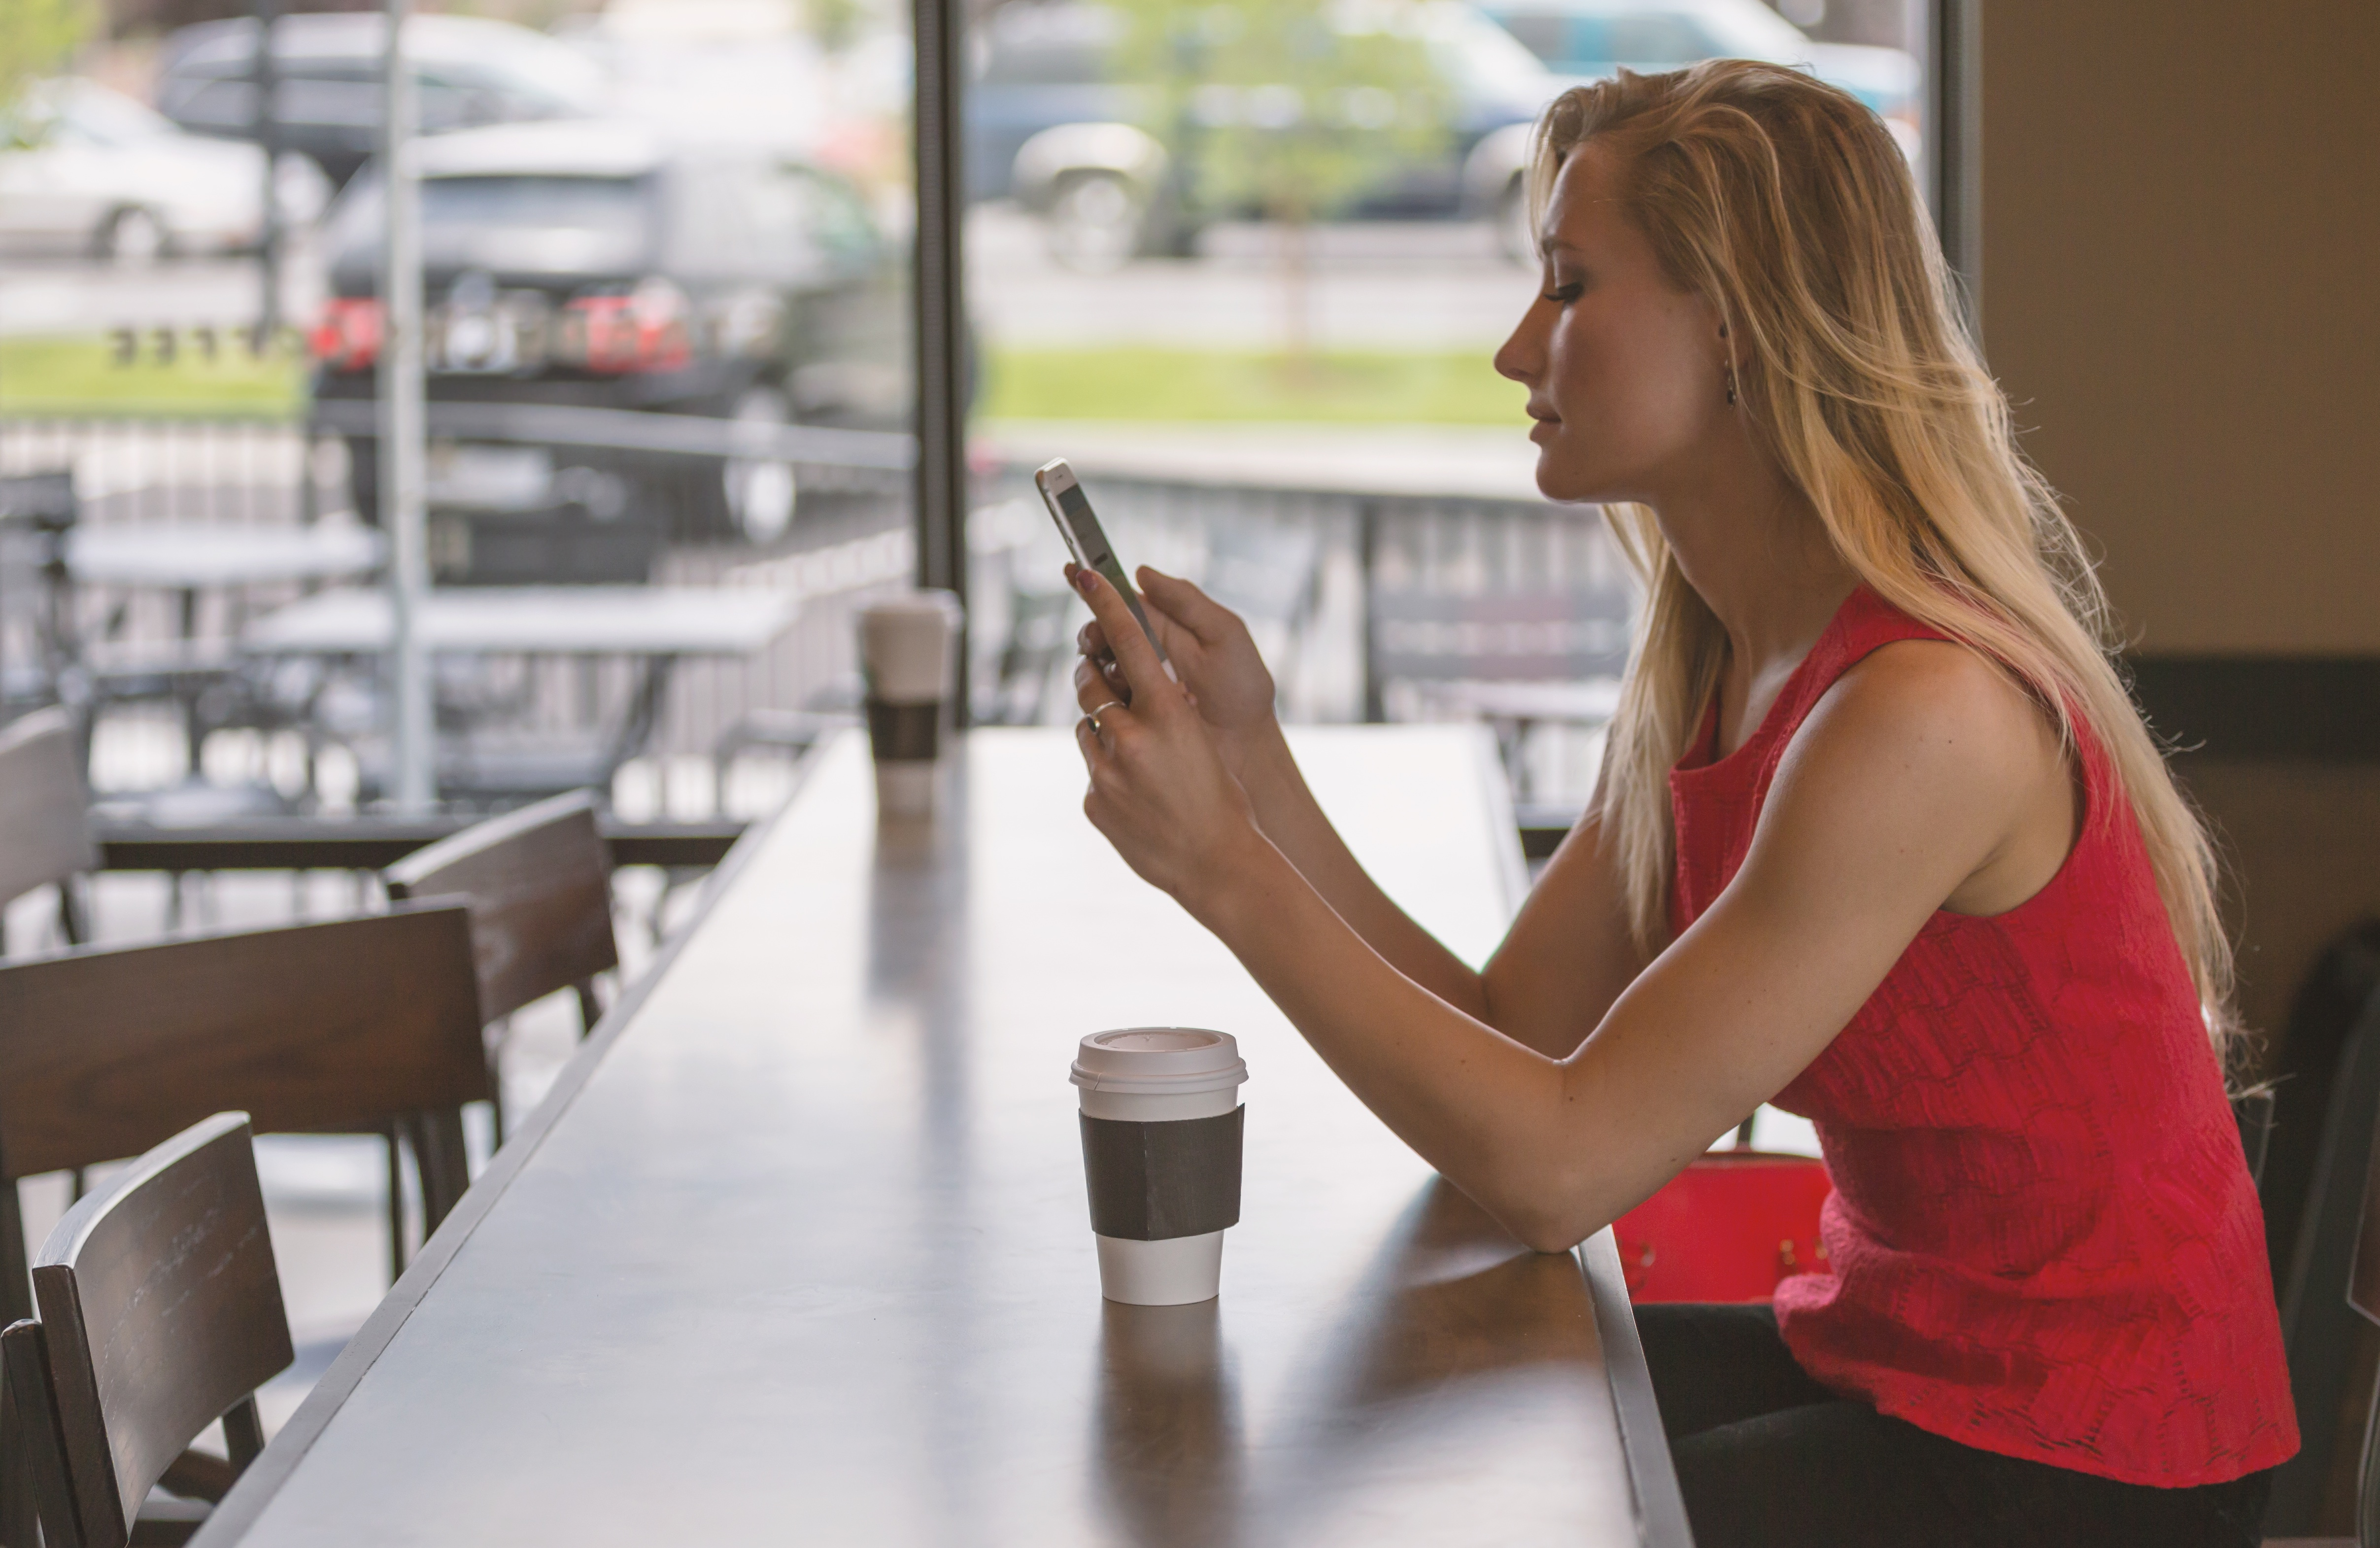 Mobile phone users are always connected